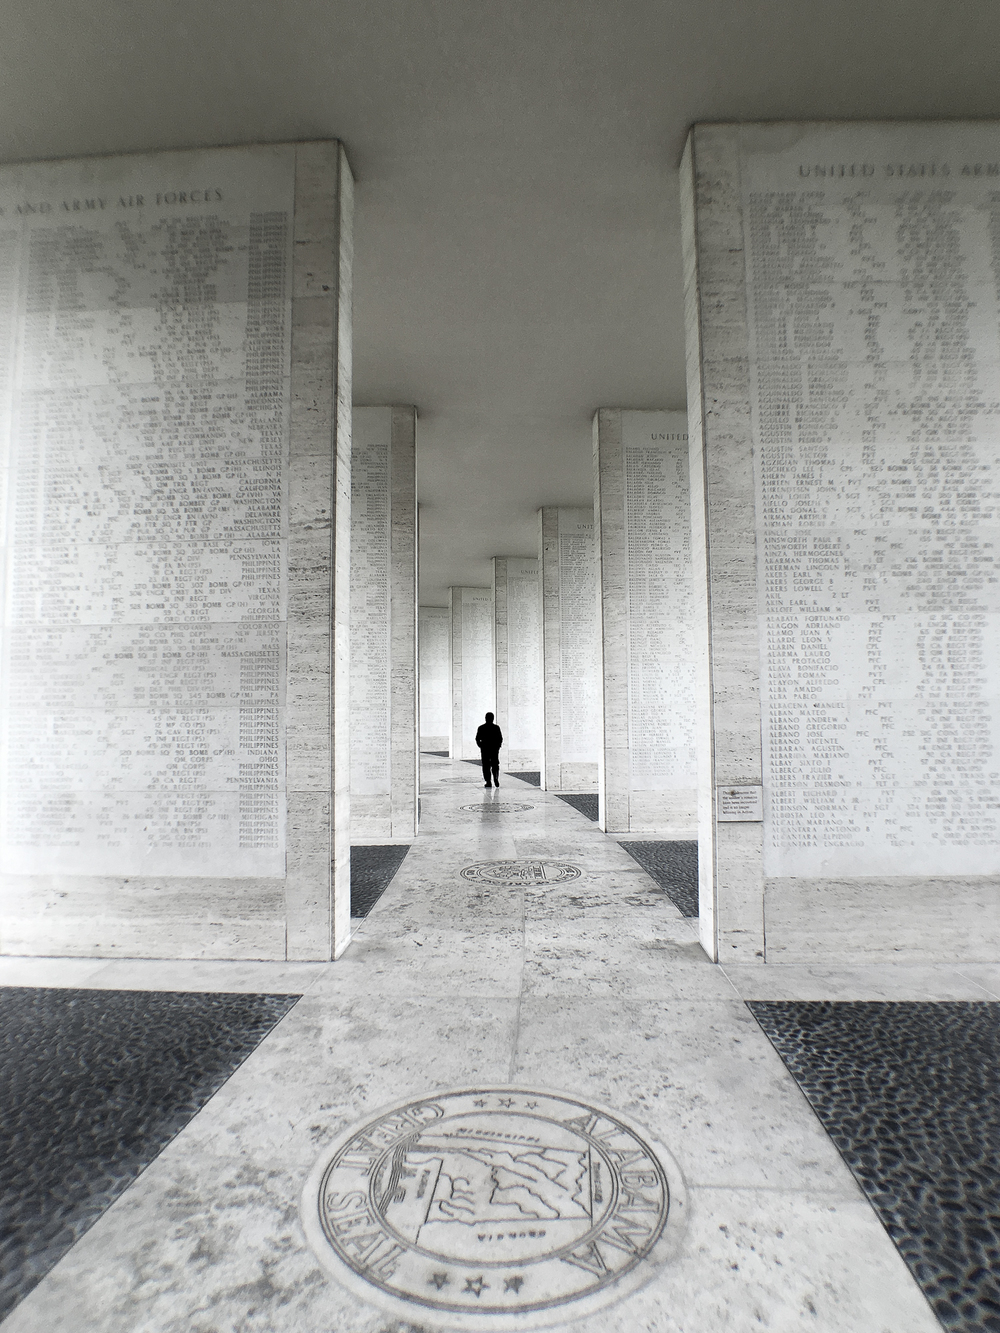 Wall of the Missing. There are about 36,000 names listed in these walls whose remains were not recovered or identified, or who were lost or buried at sea.